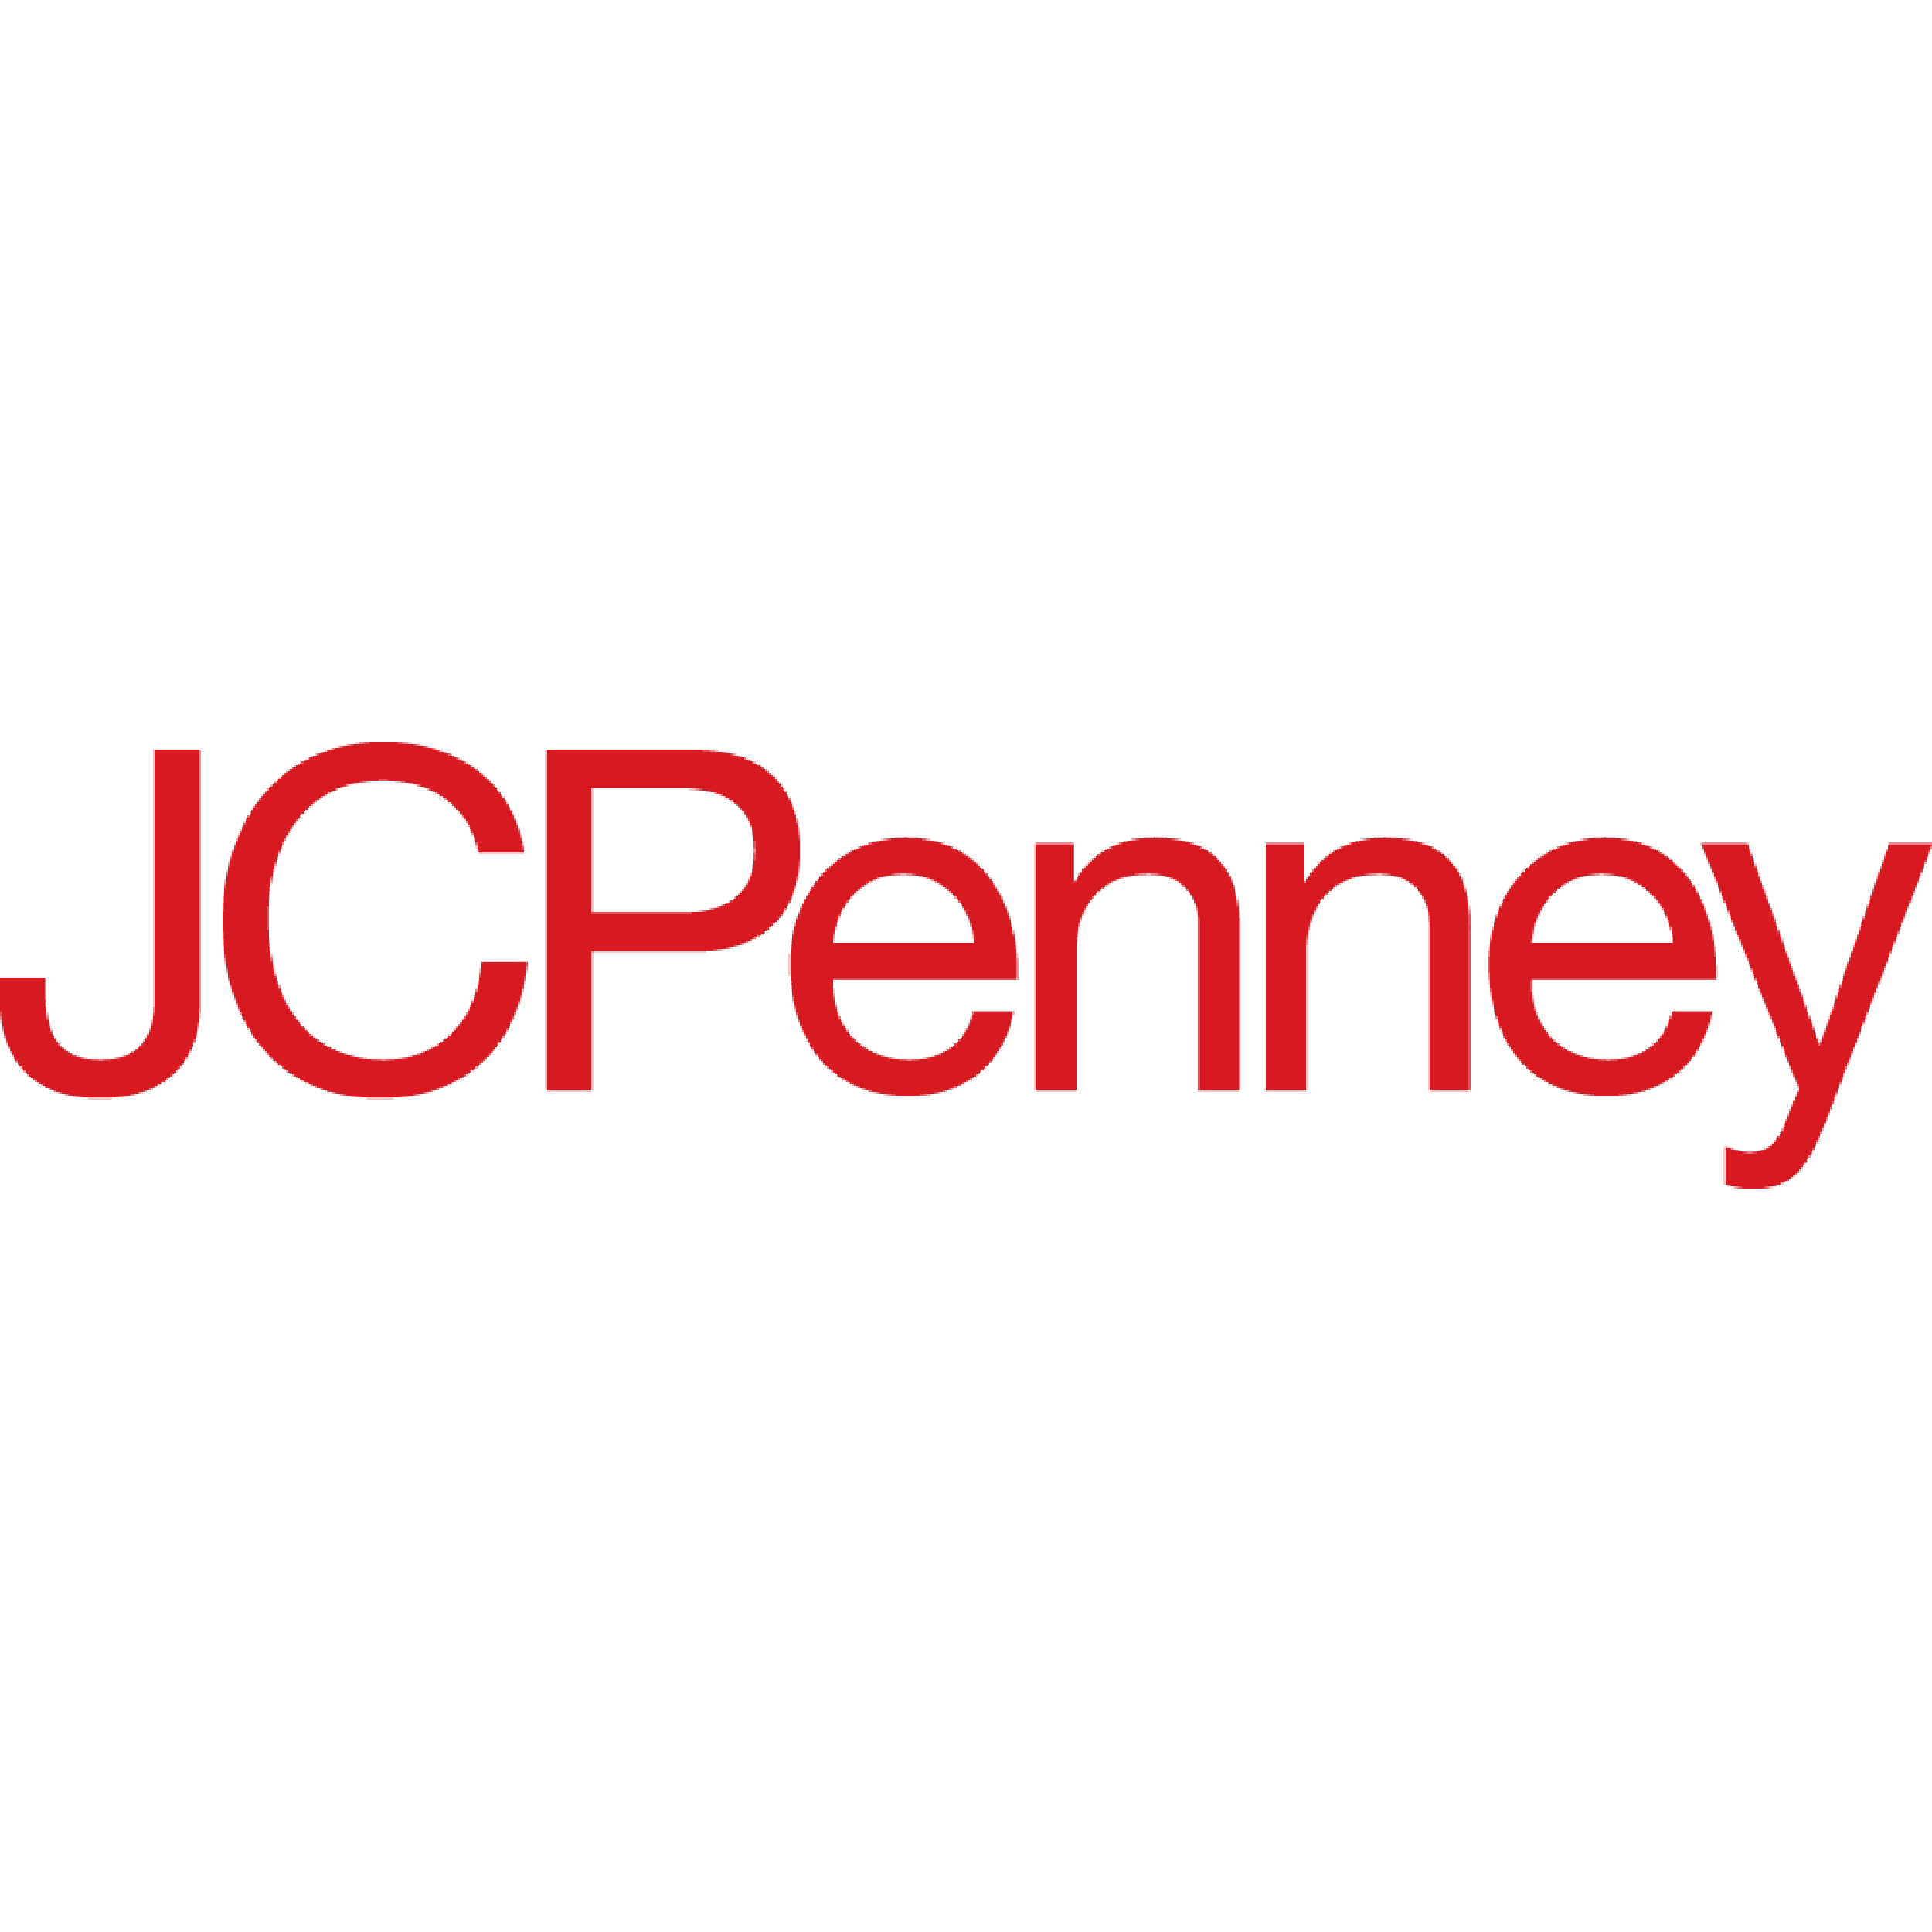 JCPenney - Dayton, OH - Department Stores